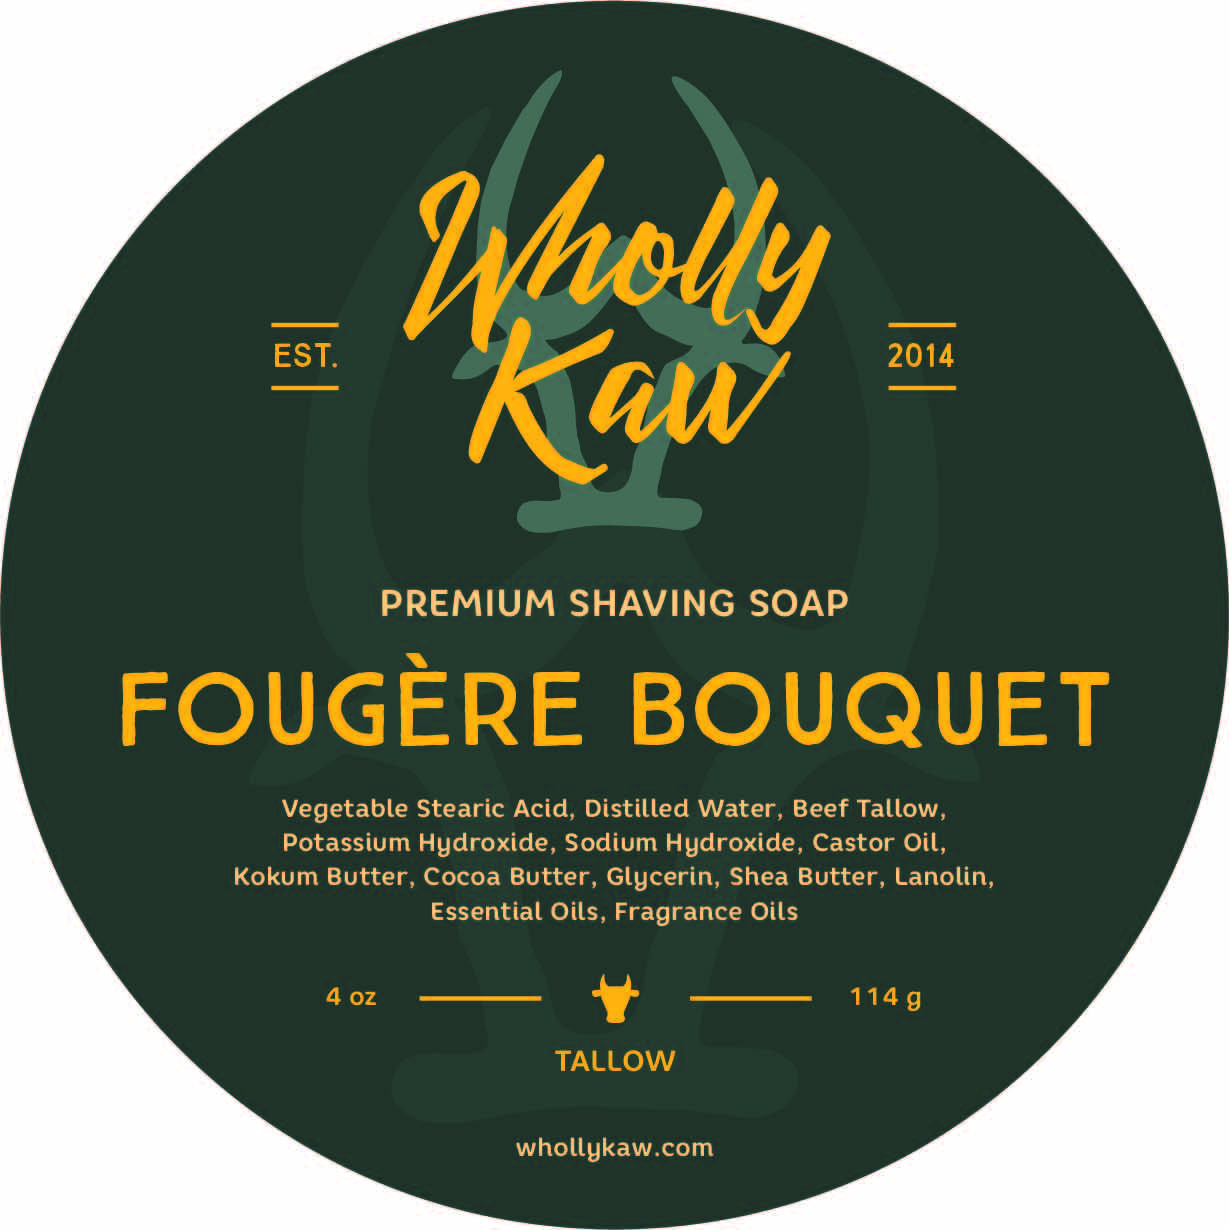 Wholly Kaw - Fougère Bouquet - Soap image